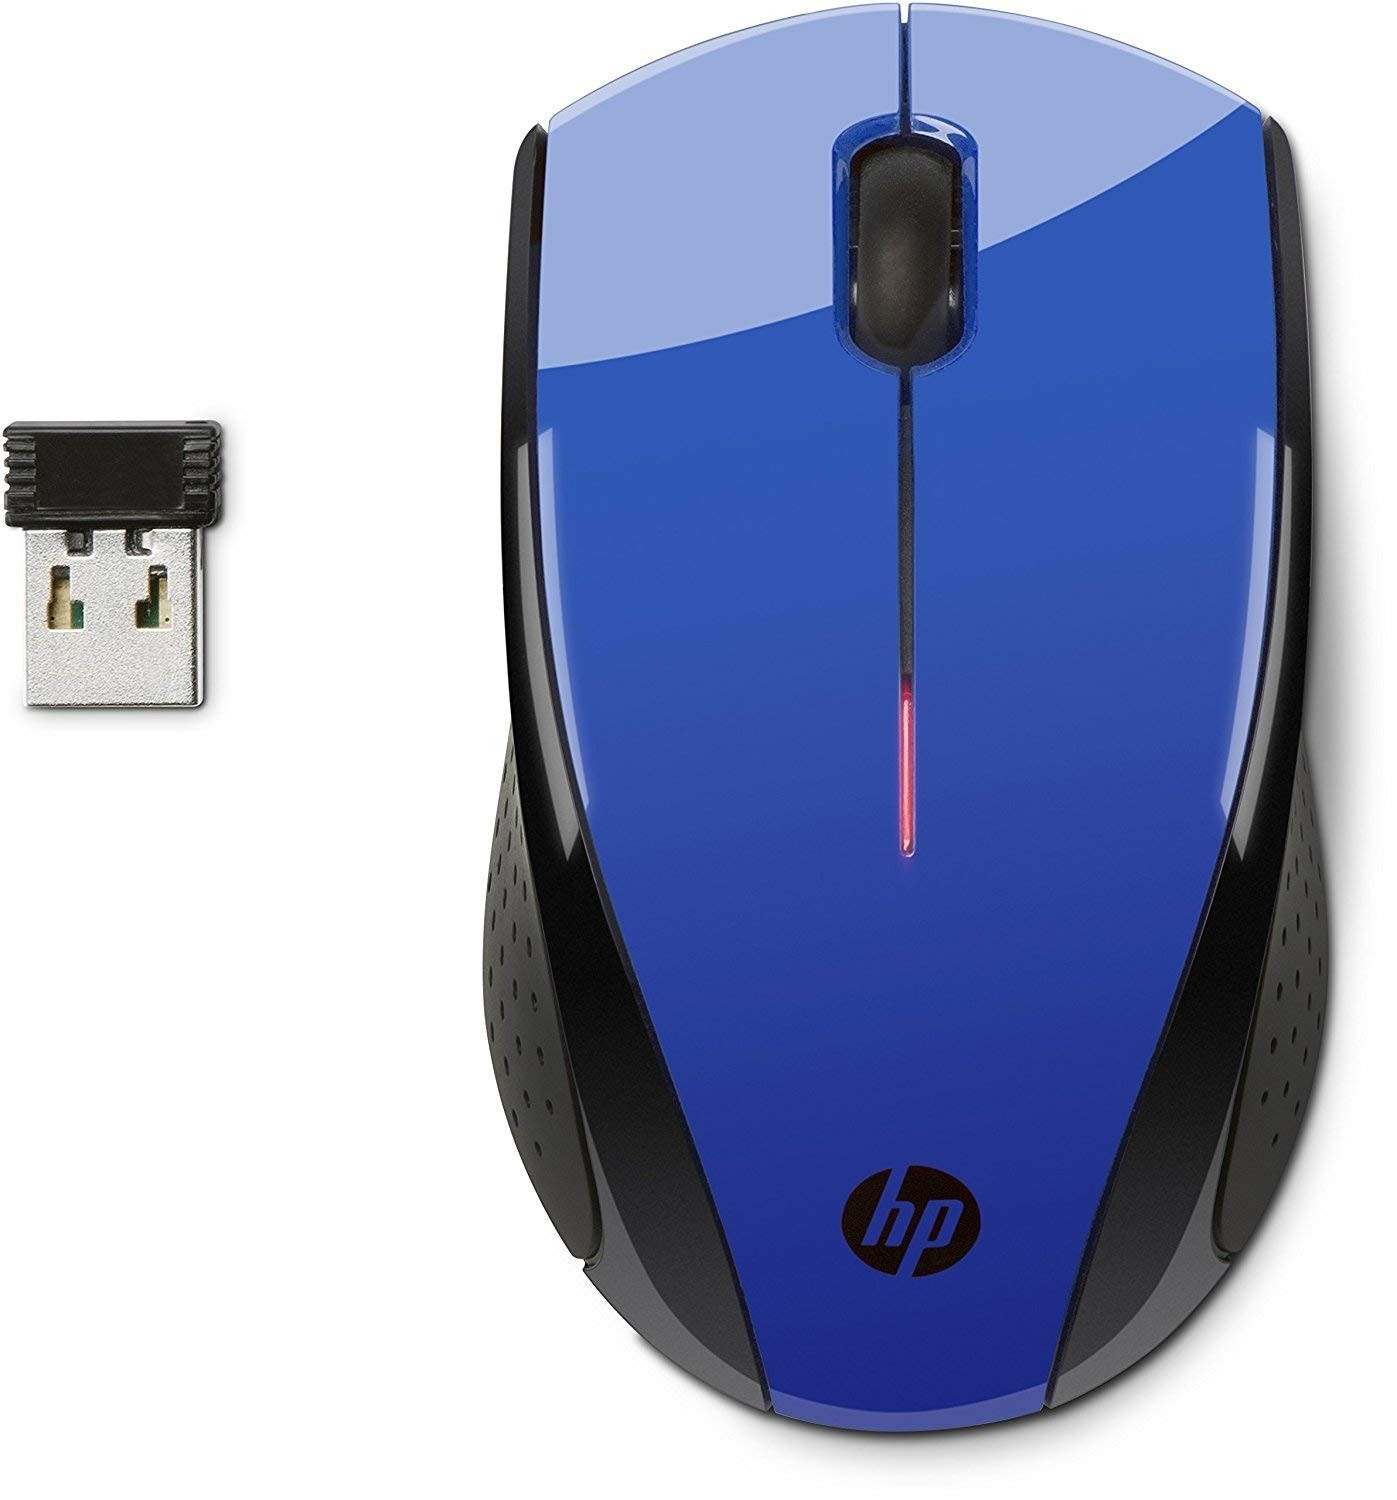 Hewlett-Packard X3000 Wireless Mouse blau/schwarz